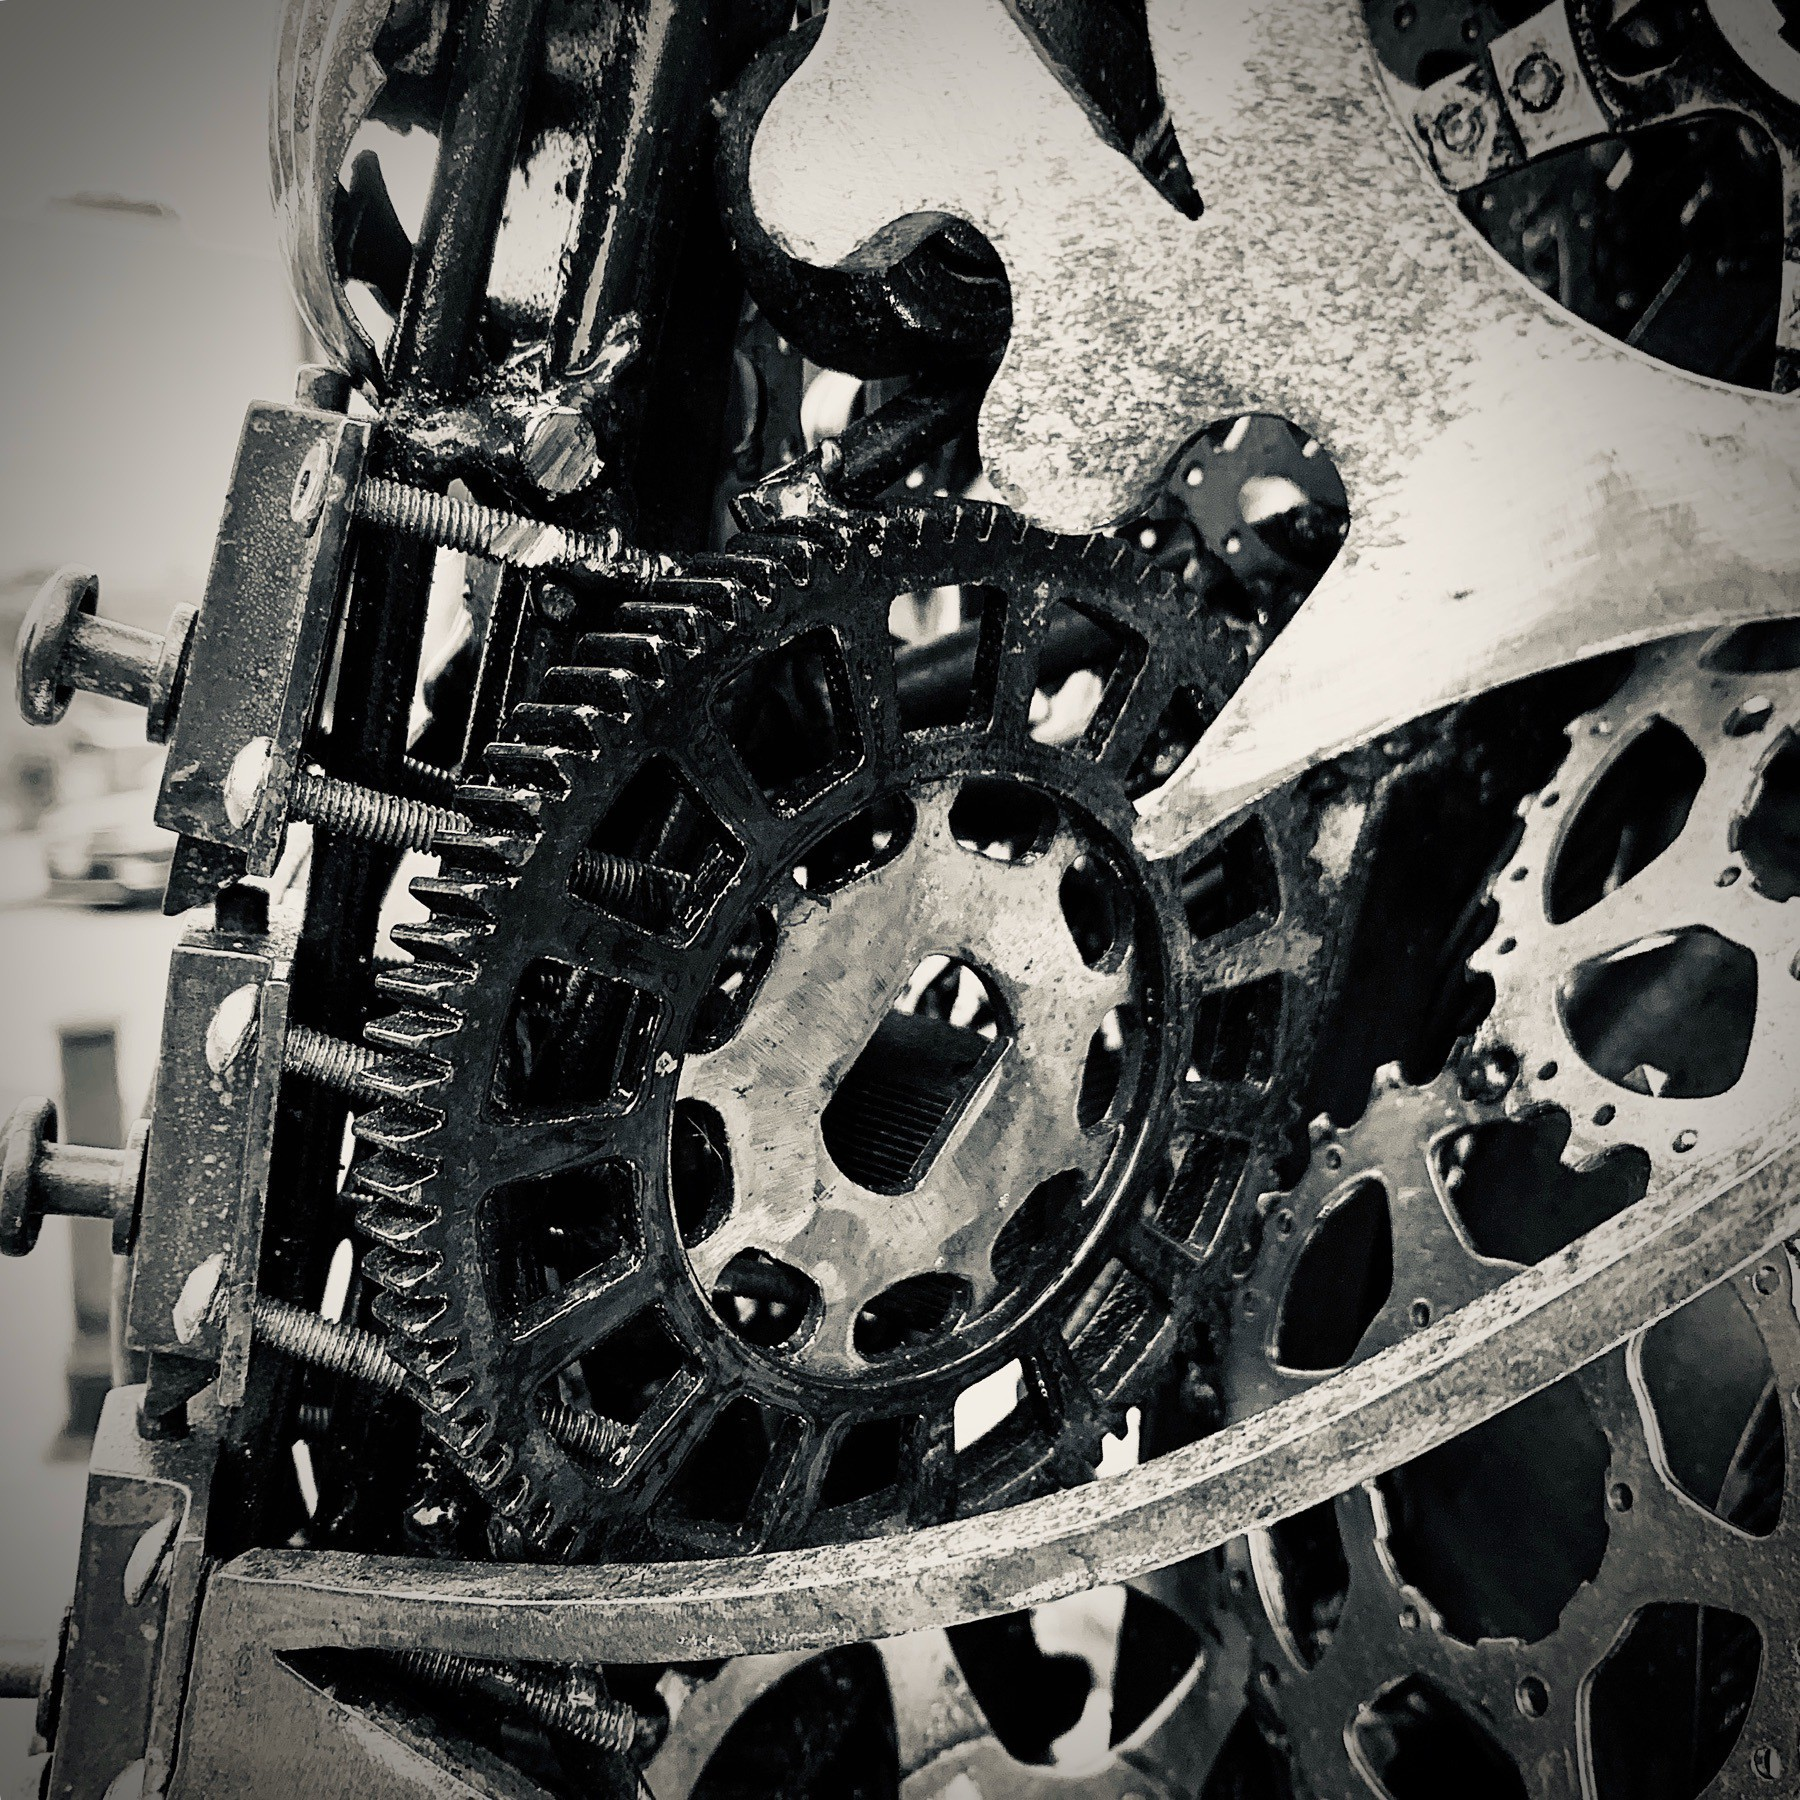 Close up of bicycle gears and sprockets from a sculpture.